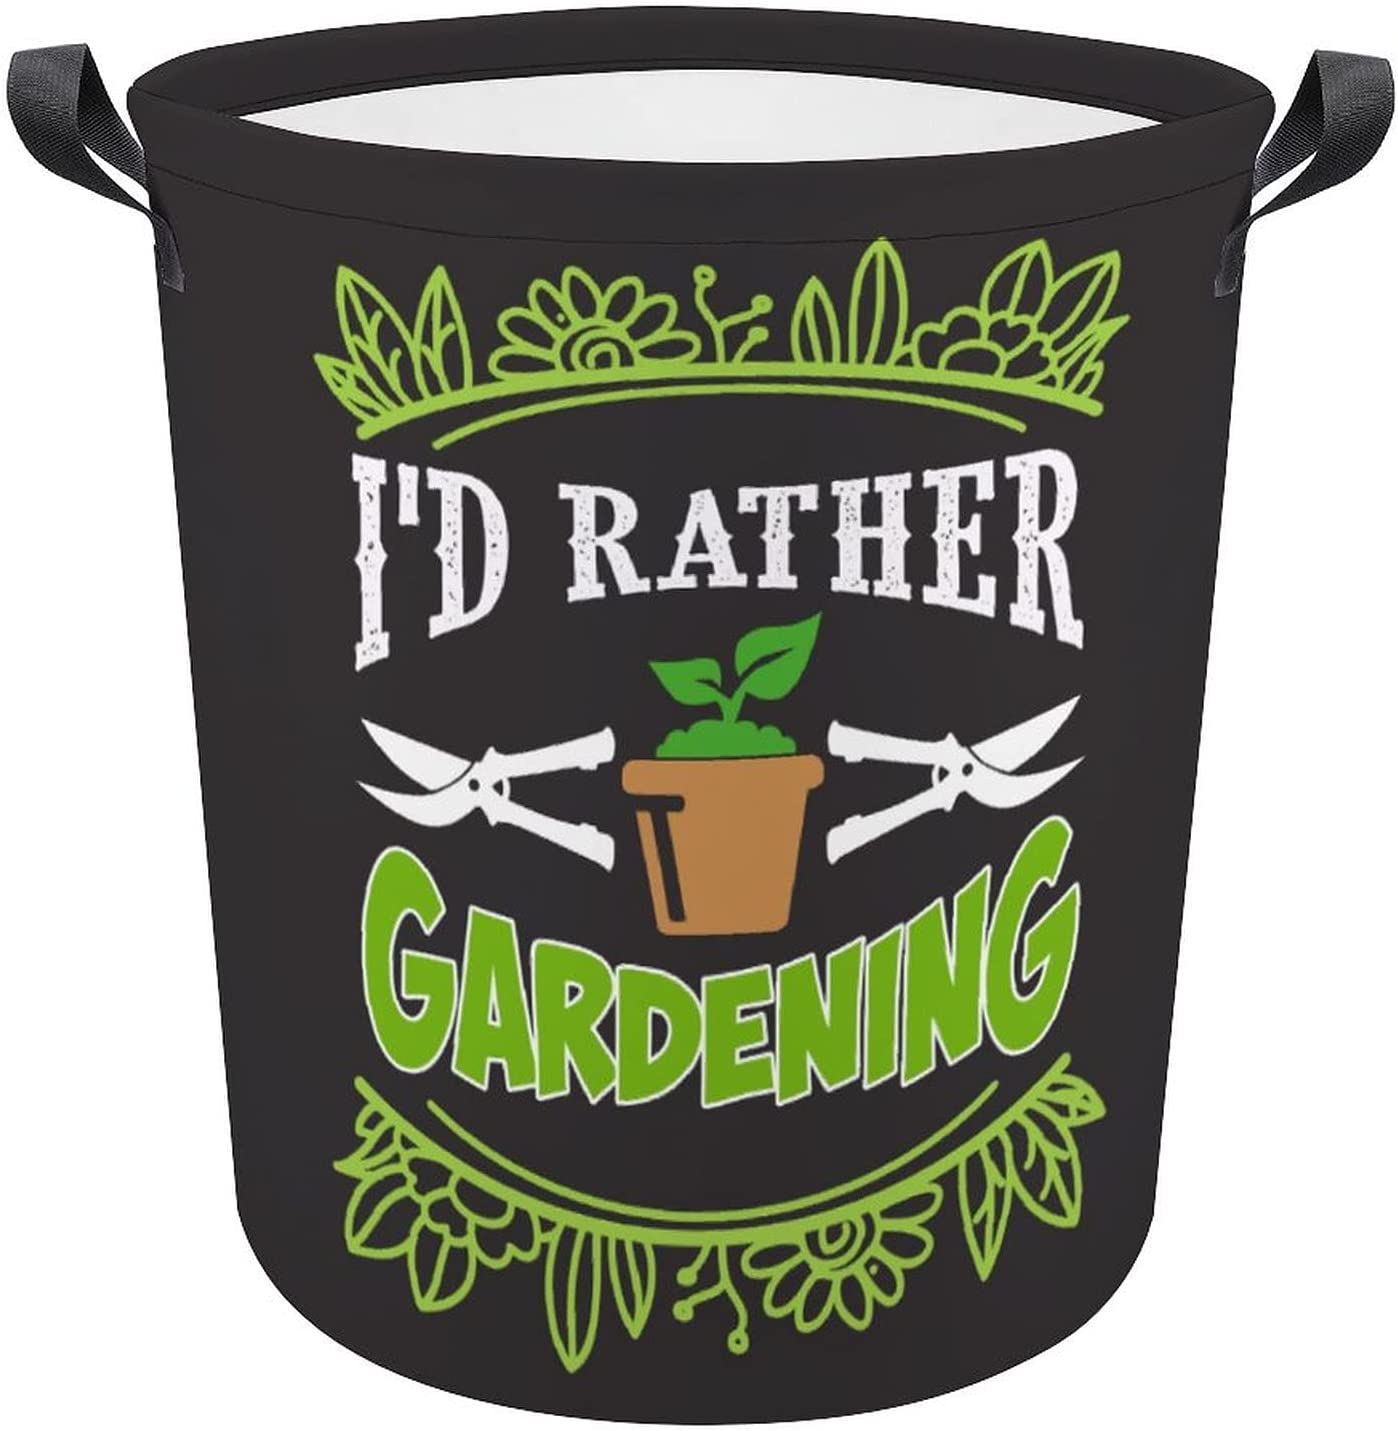 Funny Cartoon Gardening Lovers Superior Quote Oxford Sale Special Price Hamper Laundry Gift